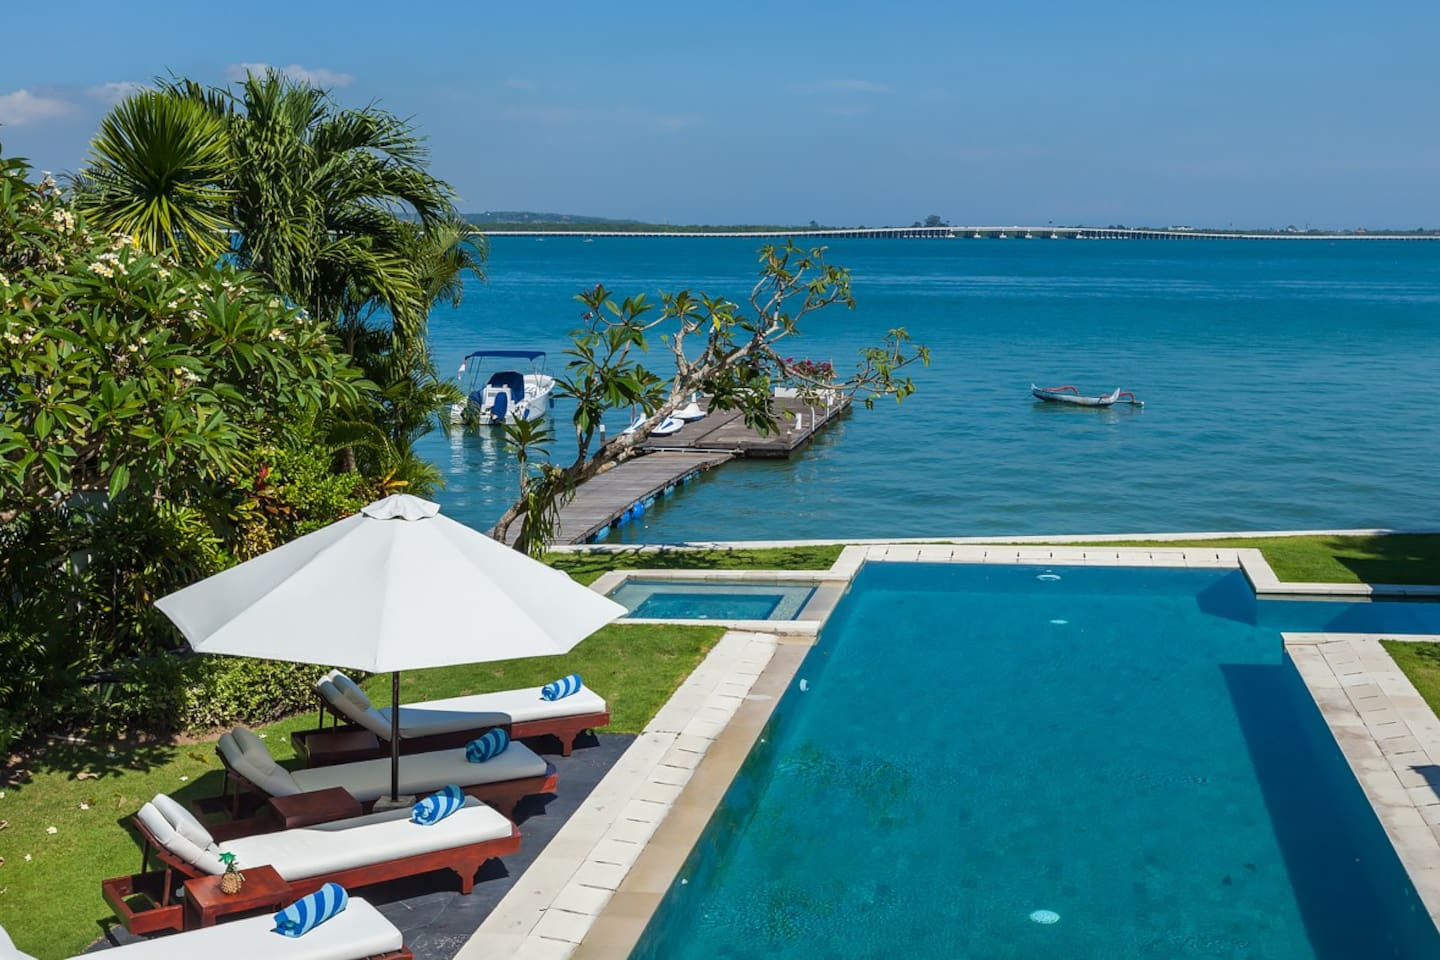 Villa Sunset Nusa Dua comes with waterfront pool, speed boat, jetty and kayaks